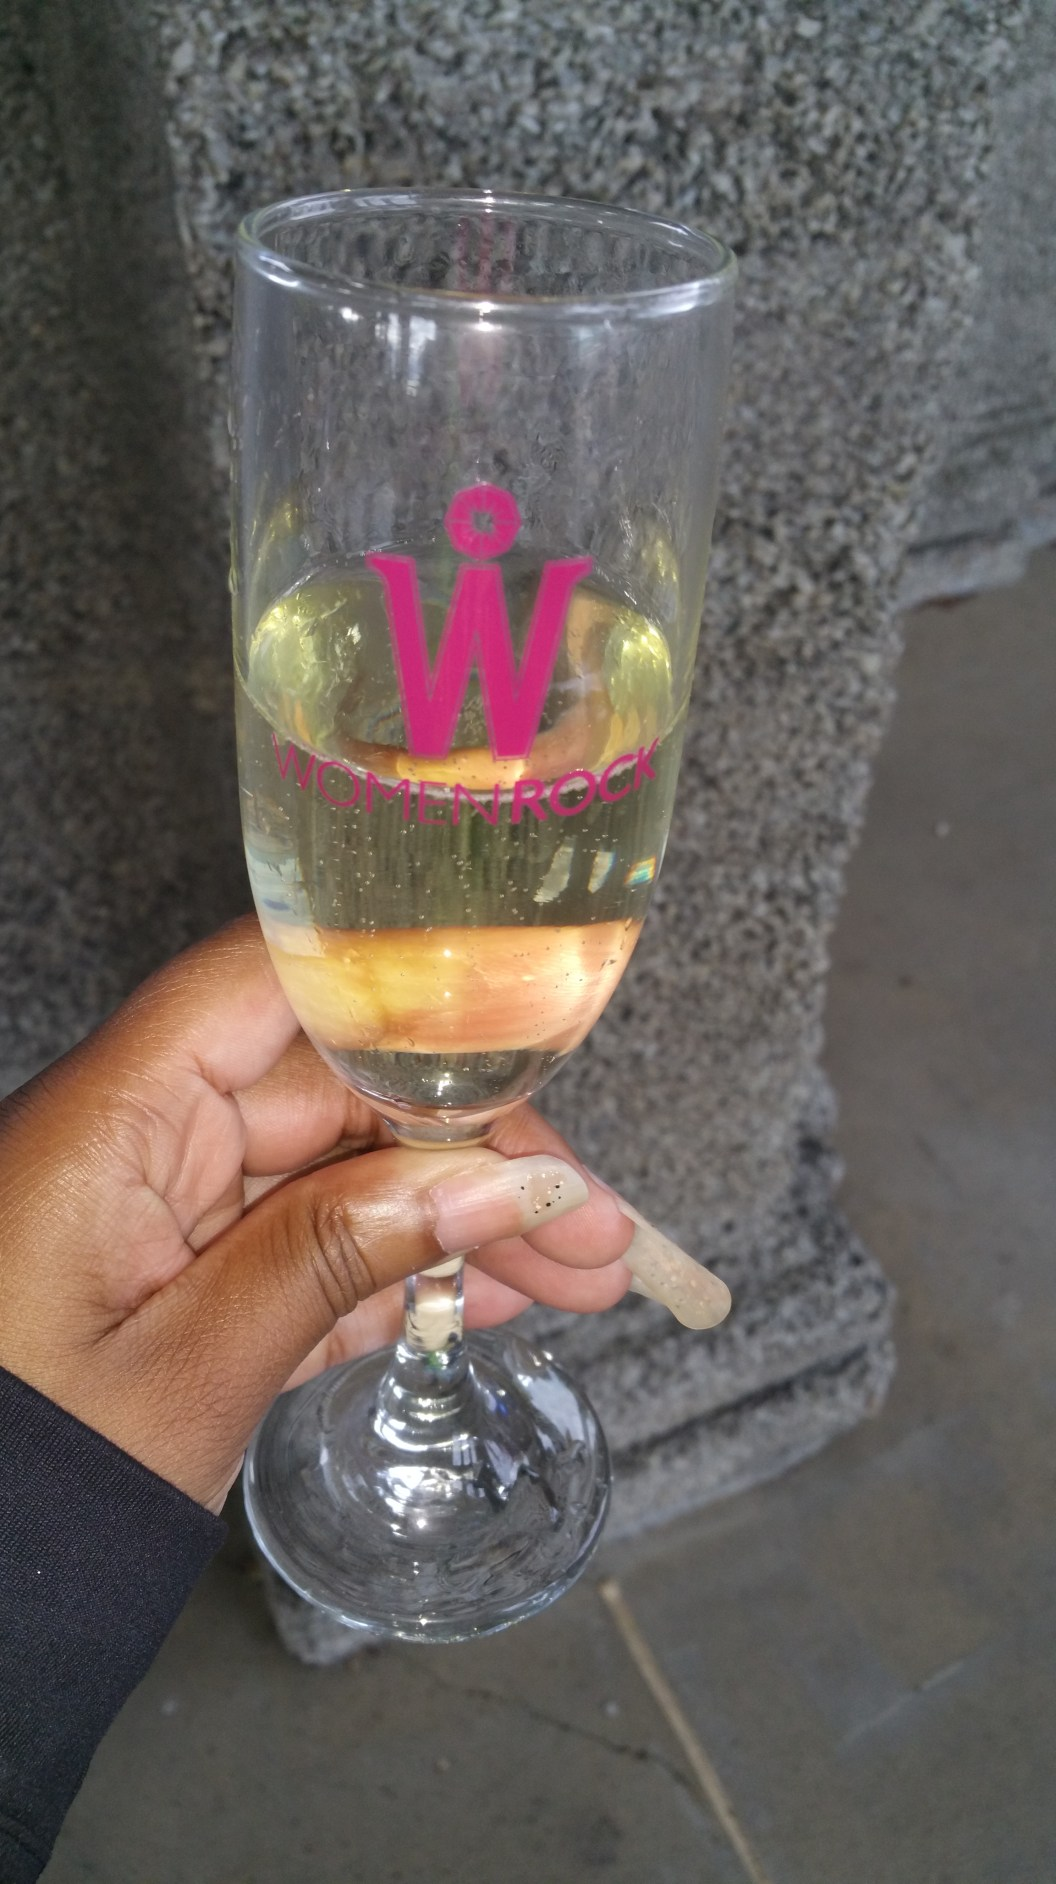 Women Rock champagne glass with bubbly